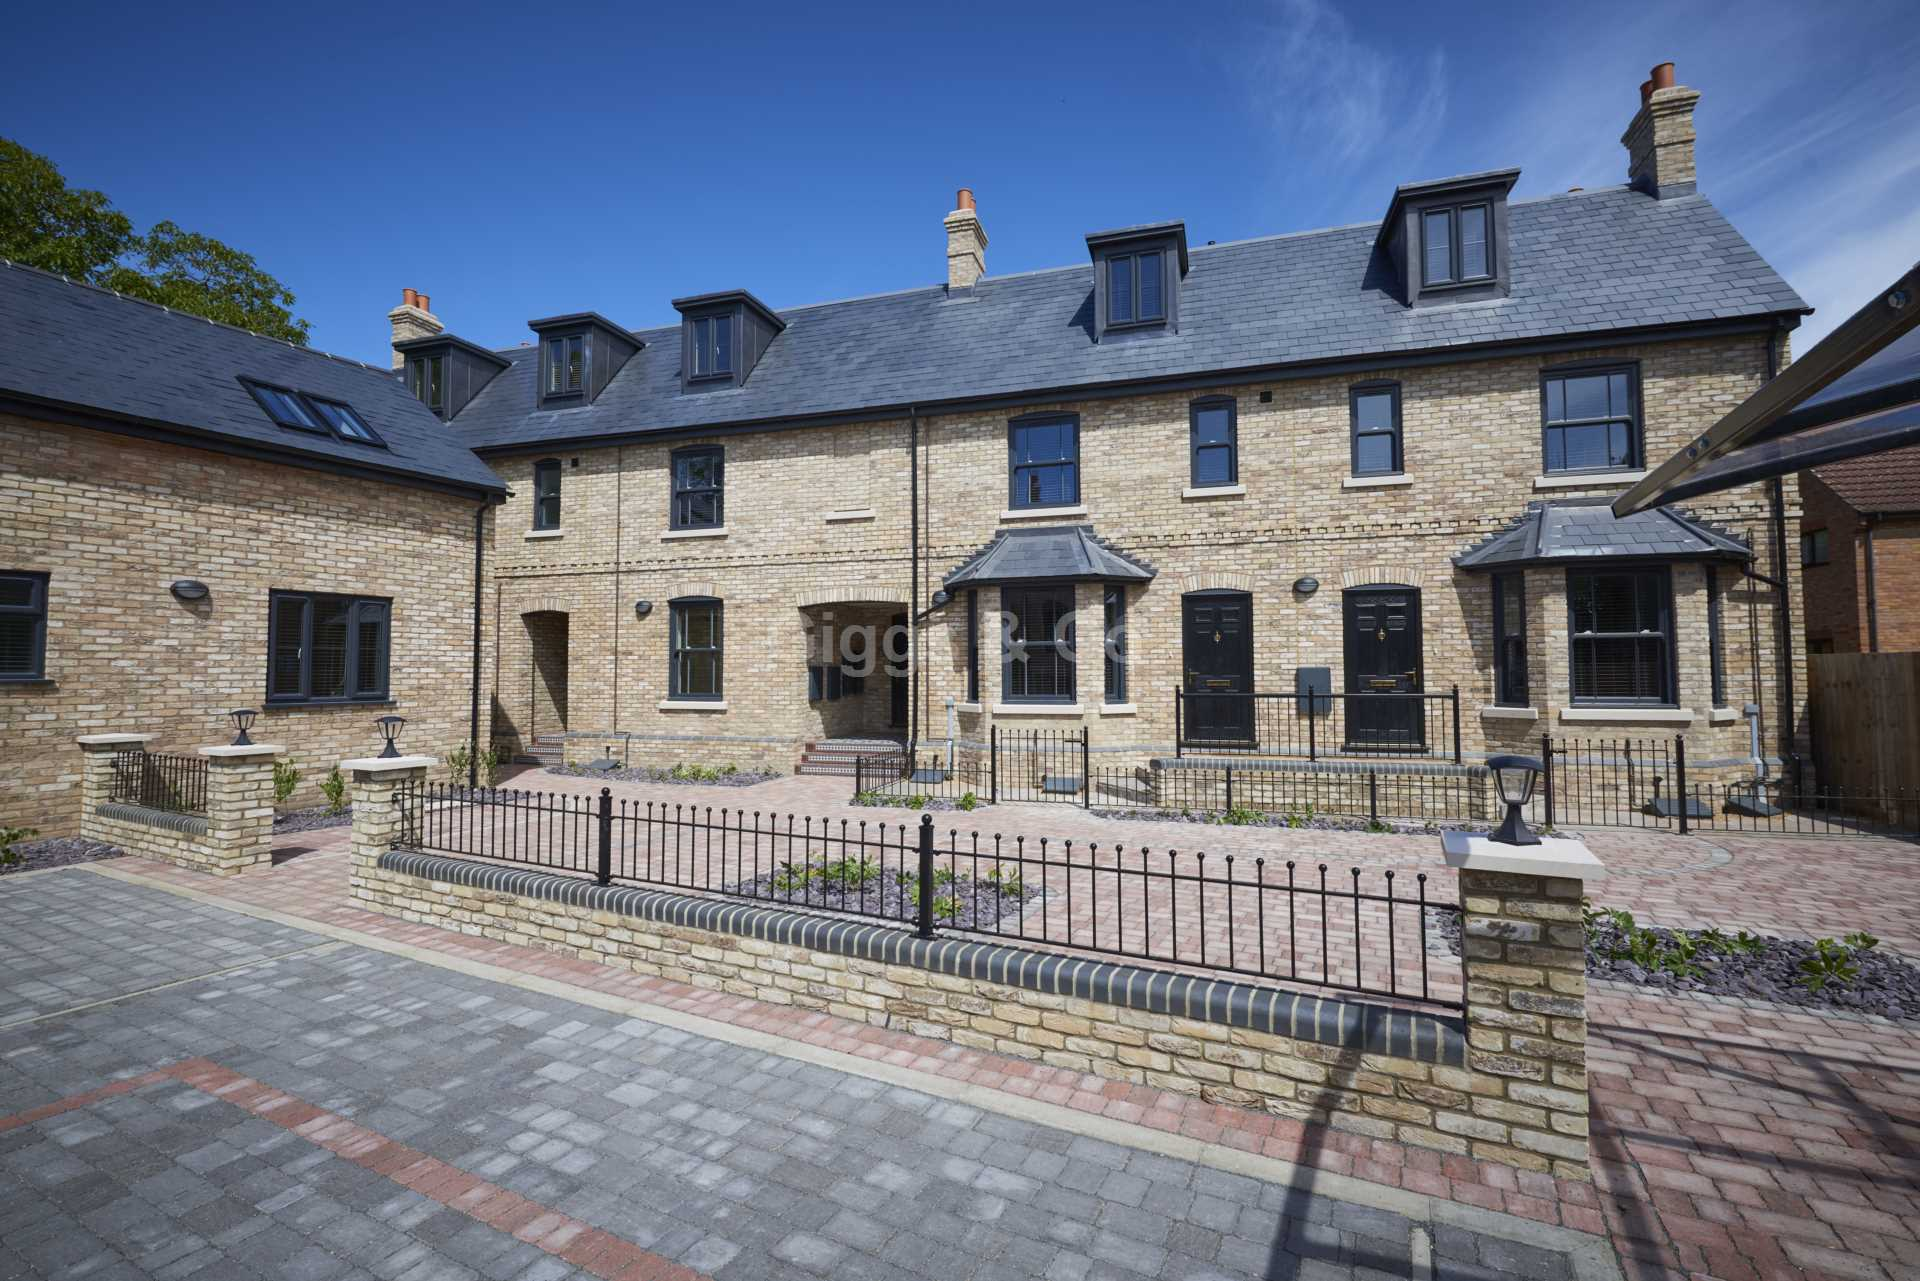 1 bed studio flat to rent in East Street, St.Ives  - Property Image 1